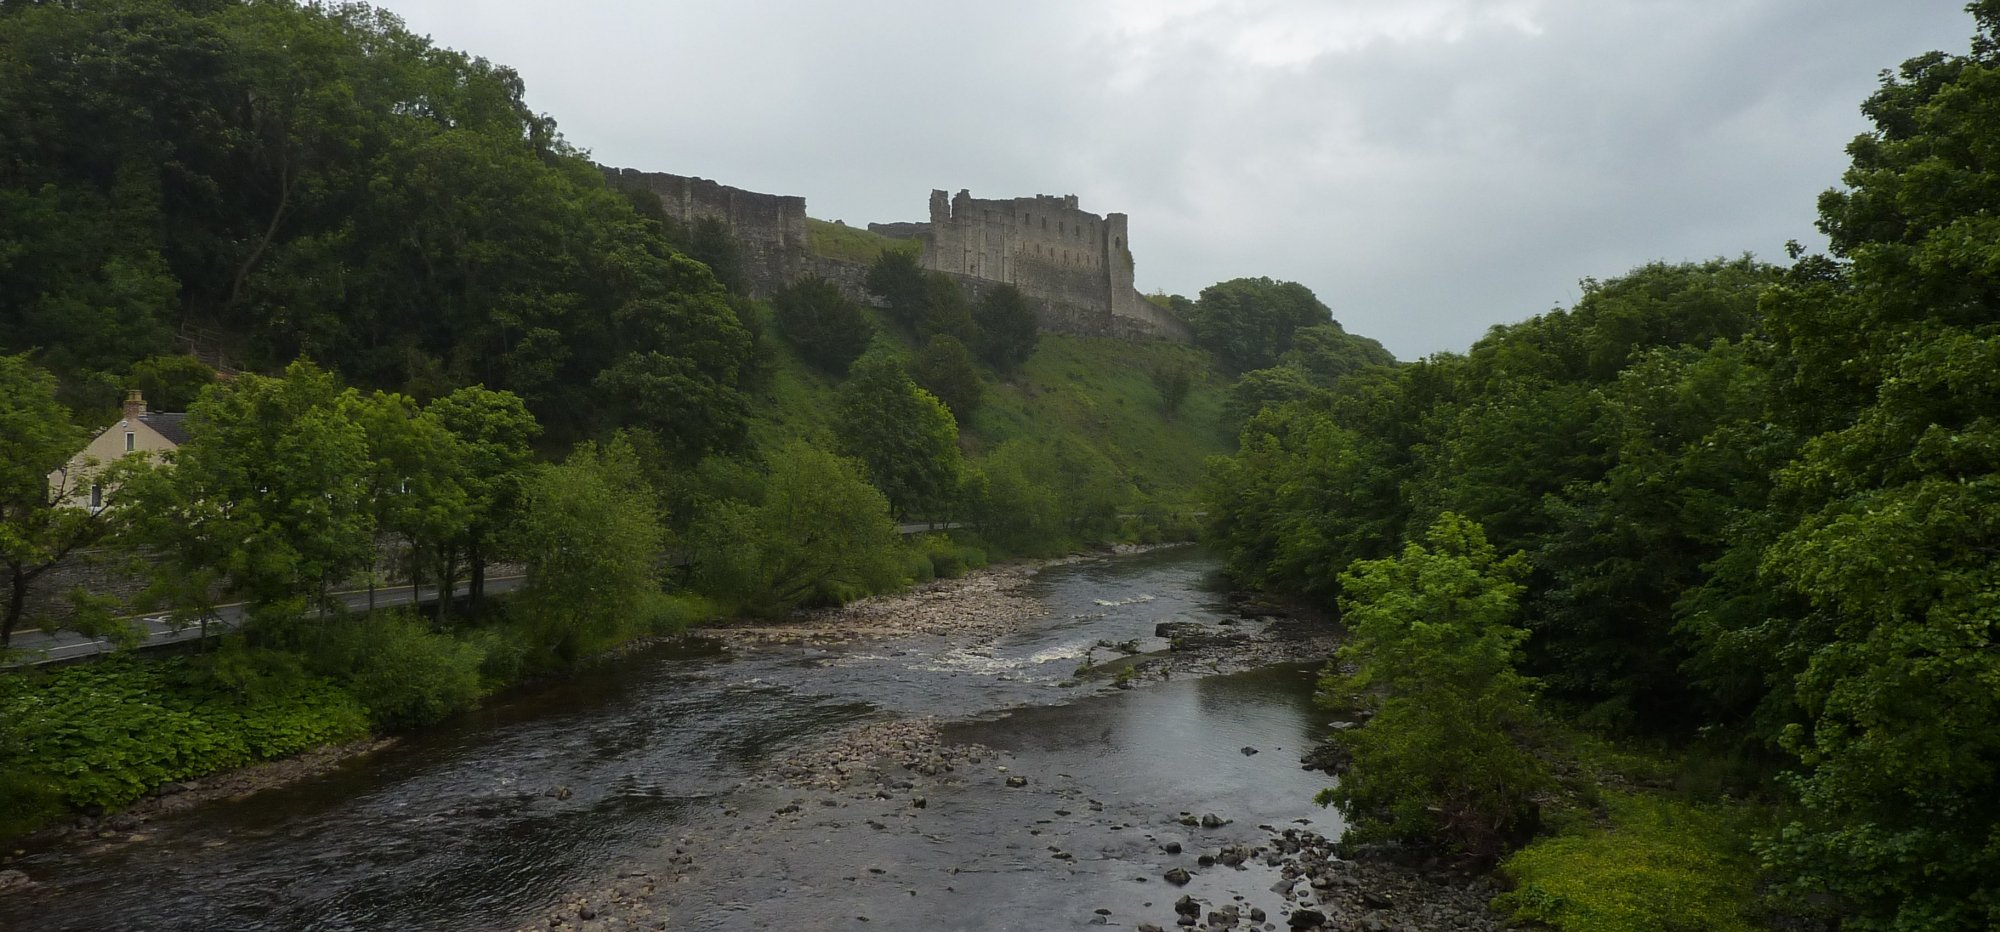 The River Swale and Richmond Castle